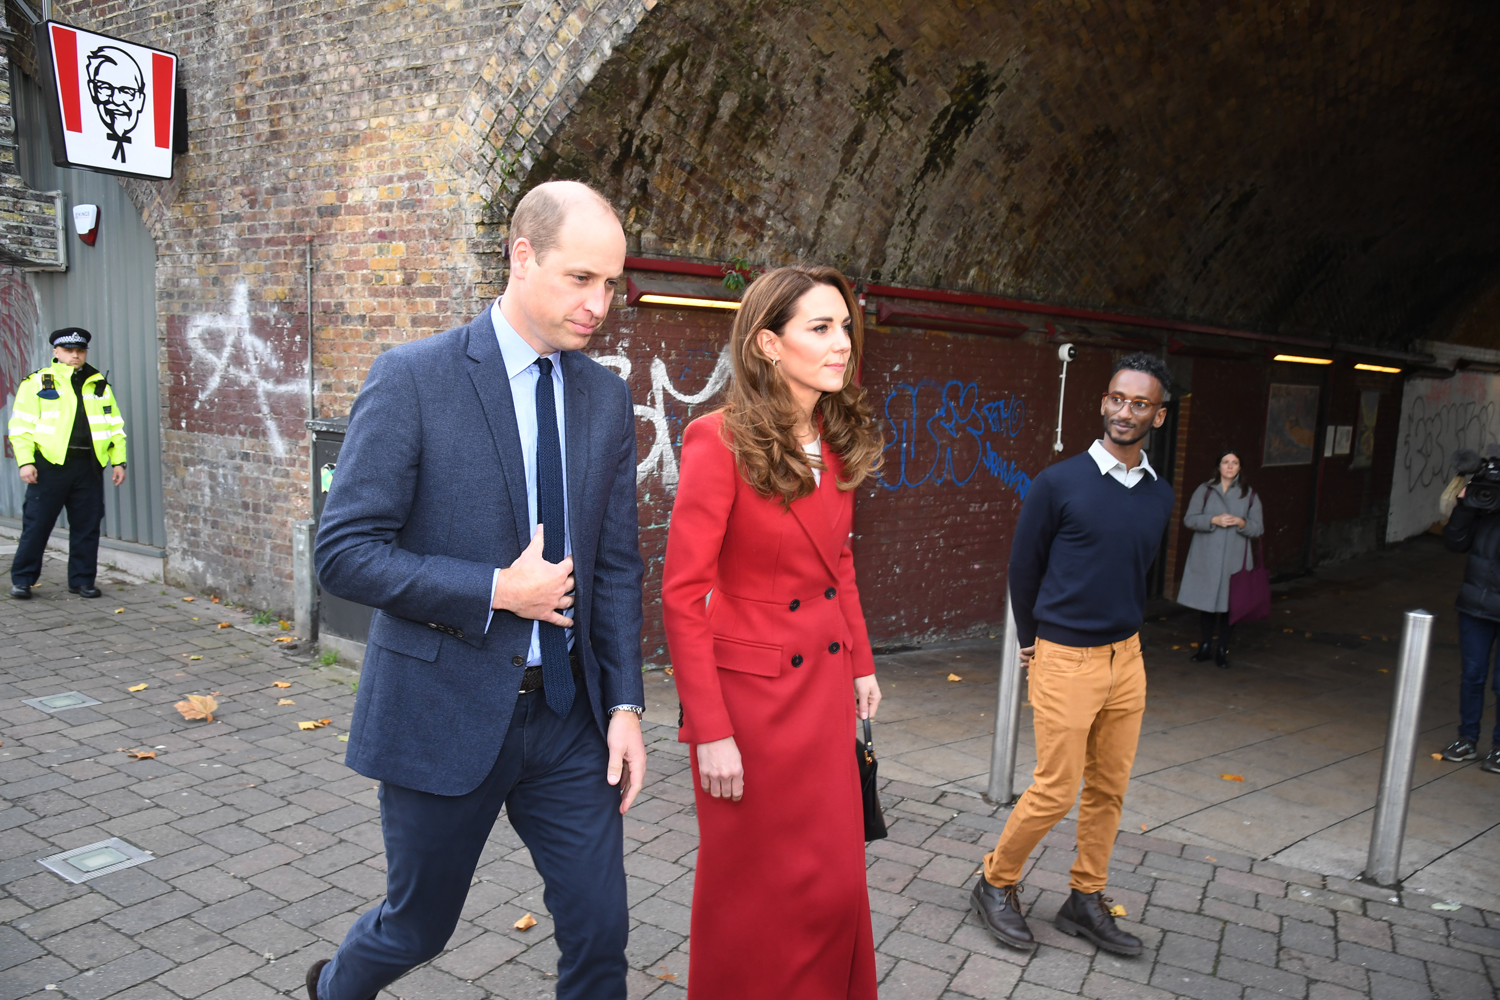 The Duke and Duchess of Cambridge during a visit to view some of the images from the Hold Still photography project